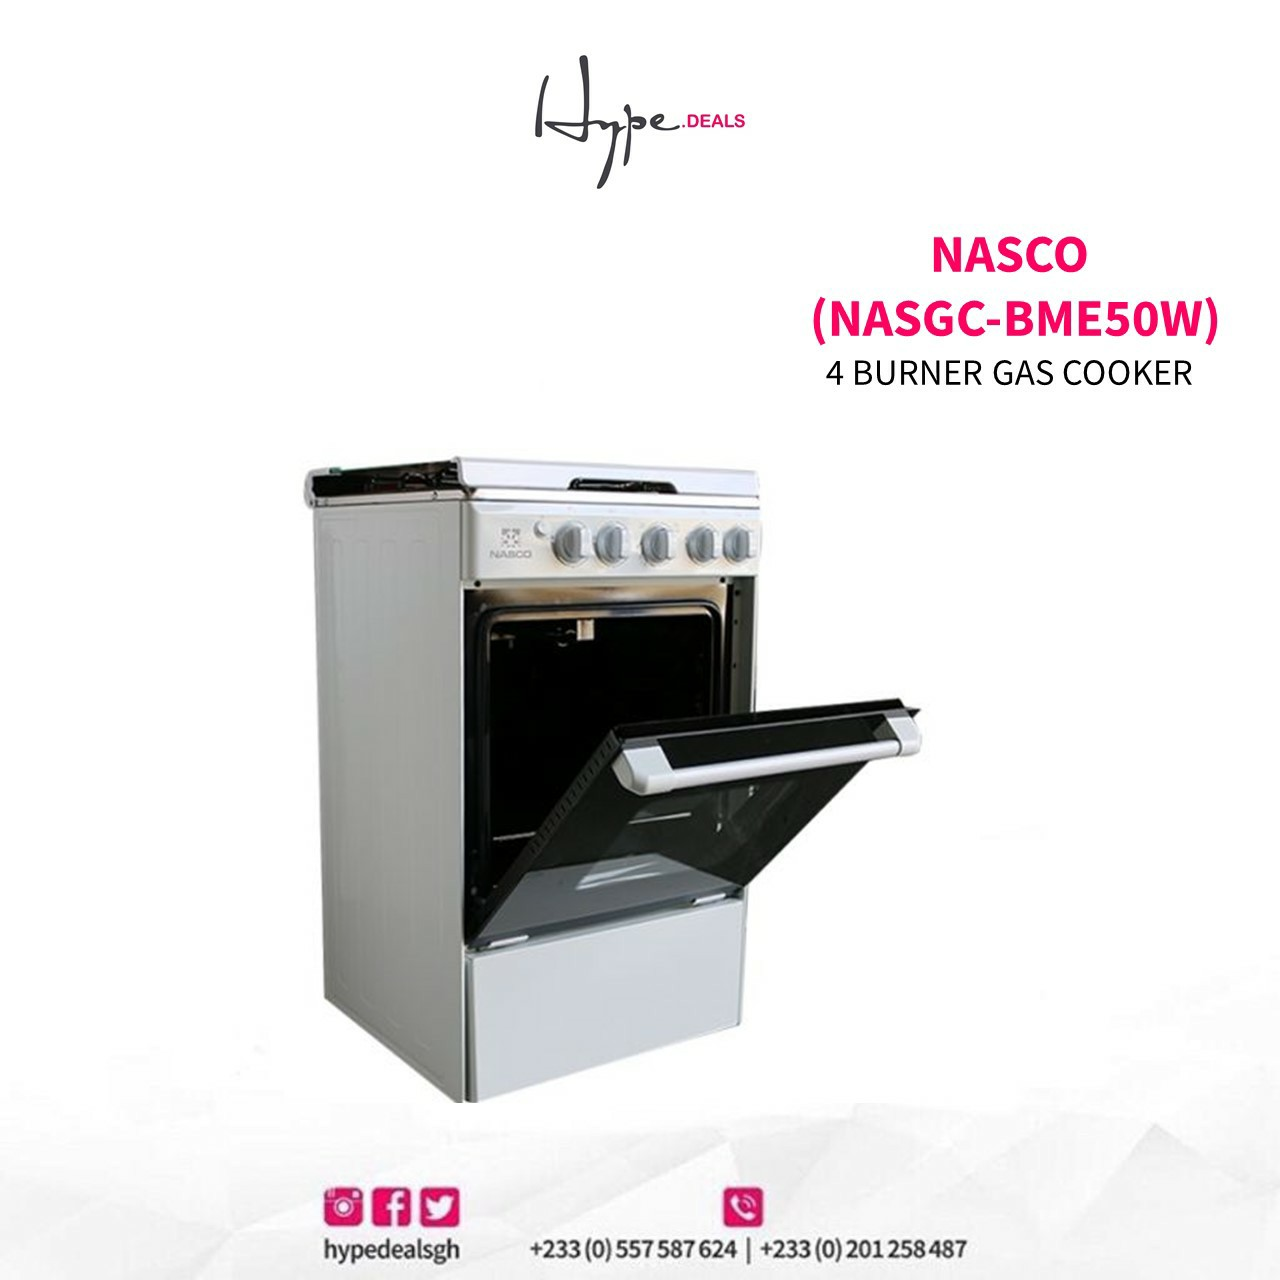 nasco 4 burner price in ghana